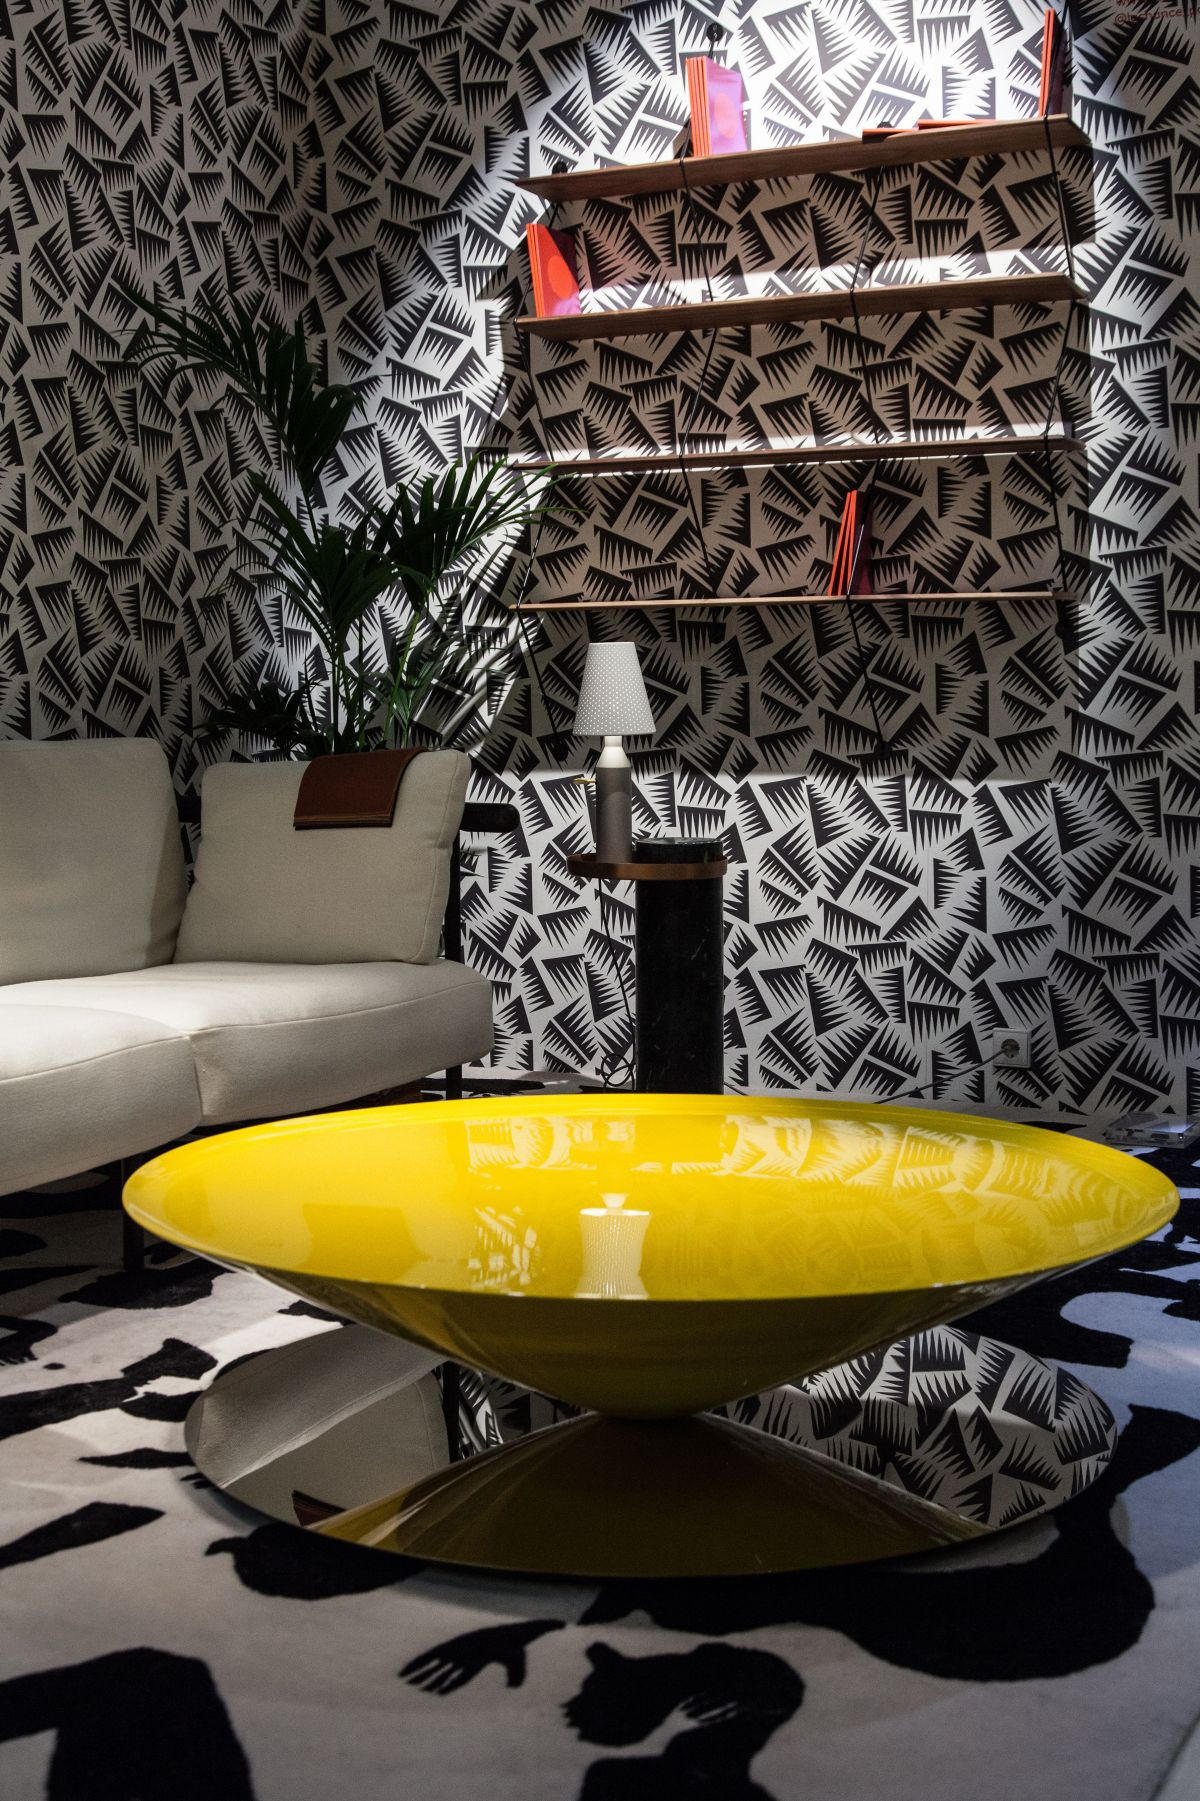 Creative versions of the usual living room coffee table float yellow luca nichetto coffee table geotapseo Image collections